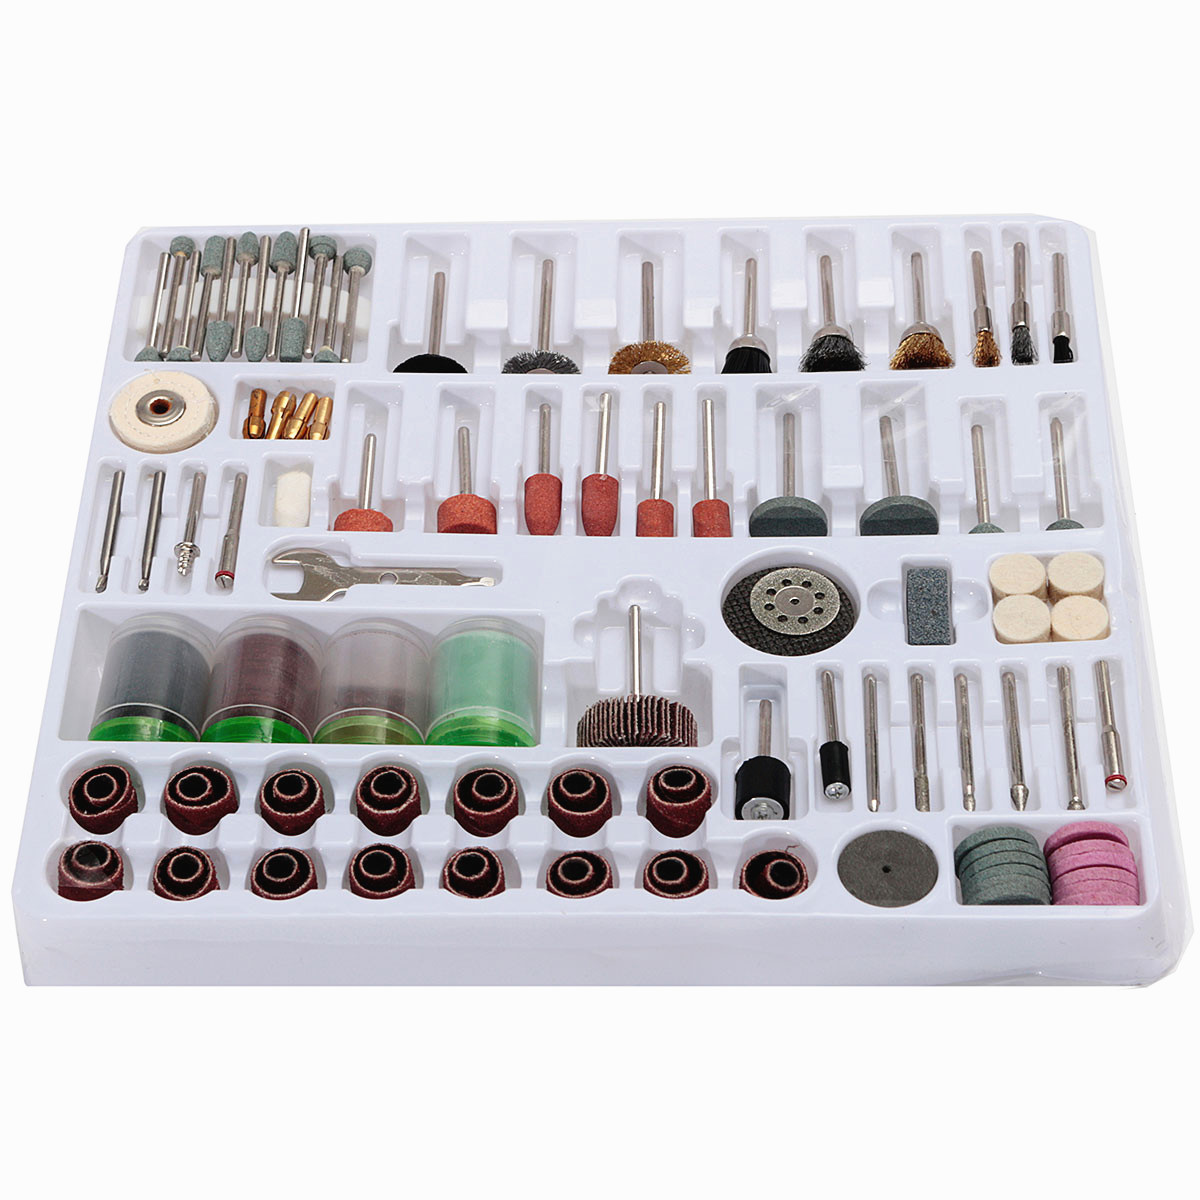 Philippines 2sets Each 216 Pcs Mini Rotary Power Drill Tool Acessories Dremel 150pcs Best Quality Package Include 1 Set 216pcs Electric Grinding Kit Not The Grinder Keywords Are Also Searched Time To Buy Accessories